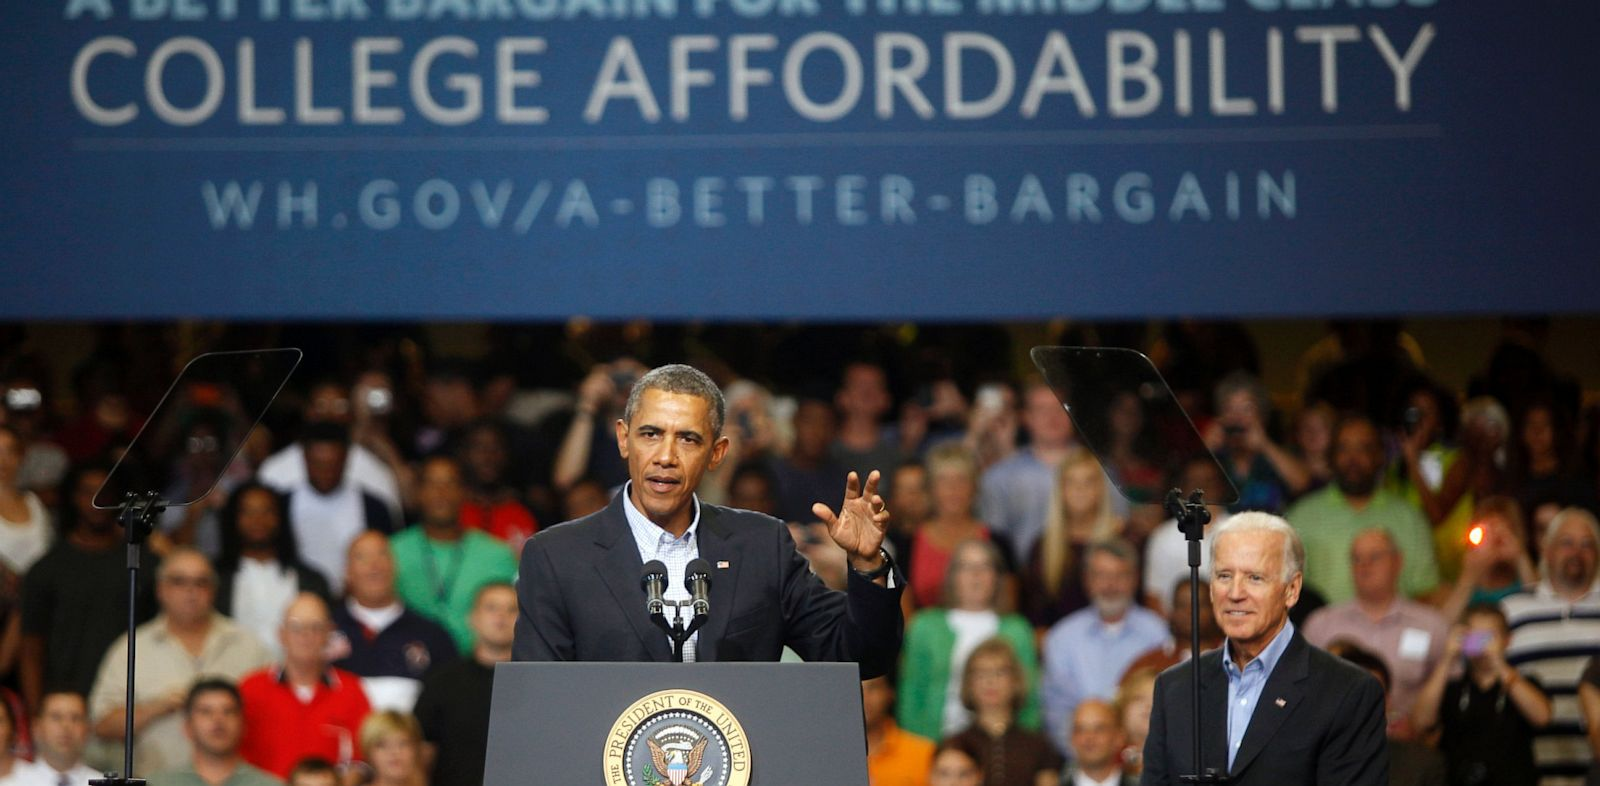 PHOTO: U.S. President Barack Obama speaks at an event at Lackawanna College on August 23, 2013 in Scranton, Pennsylvania. Obama is on his second day of a bus tour of New York and Pennsylvania to discuss his plan to make college more affordable.